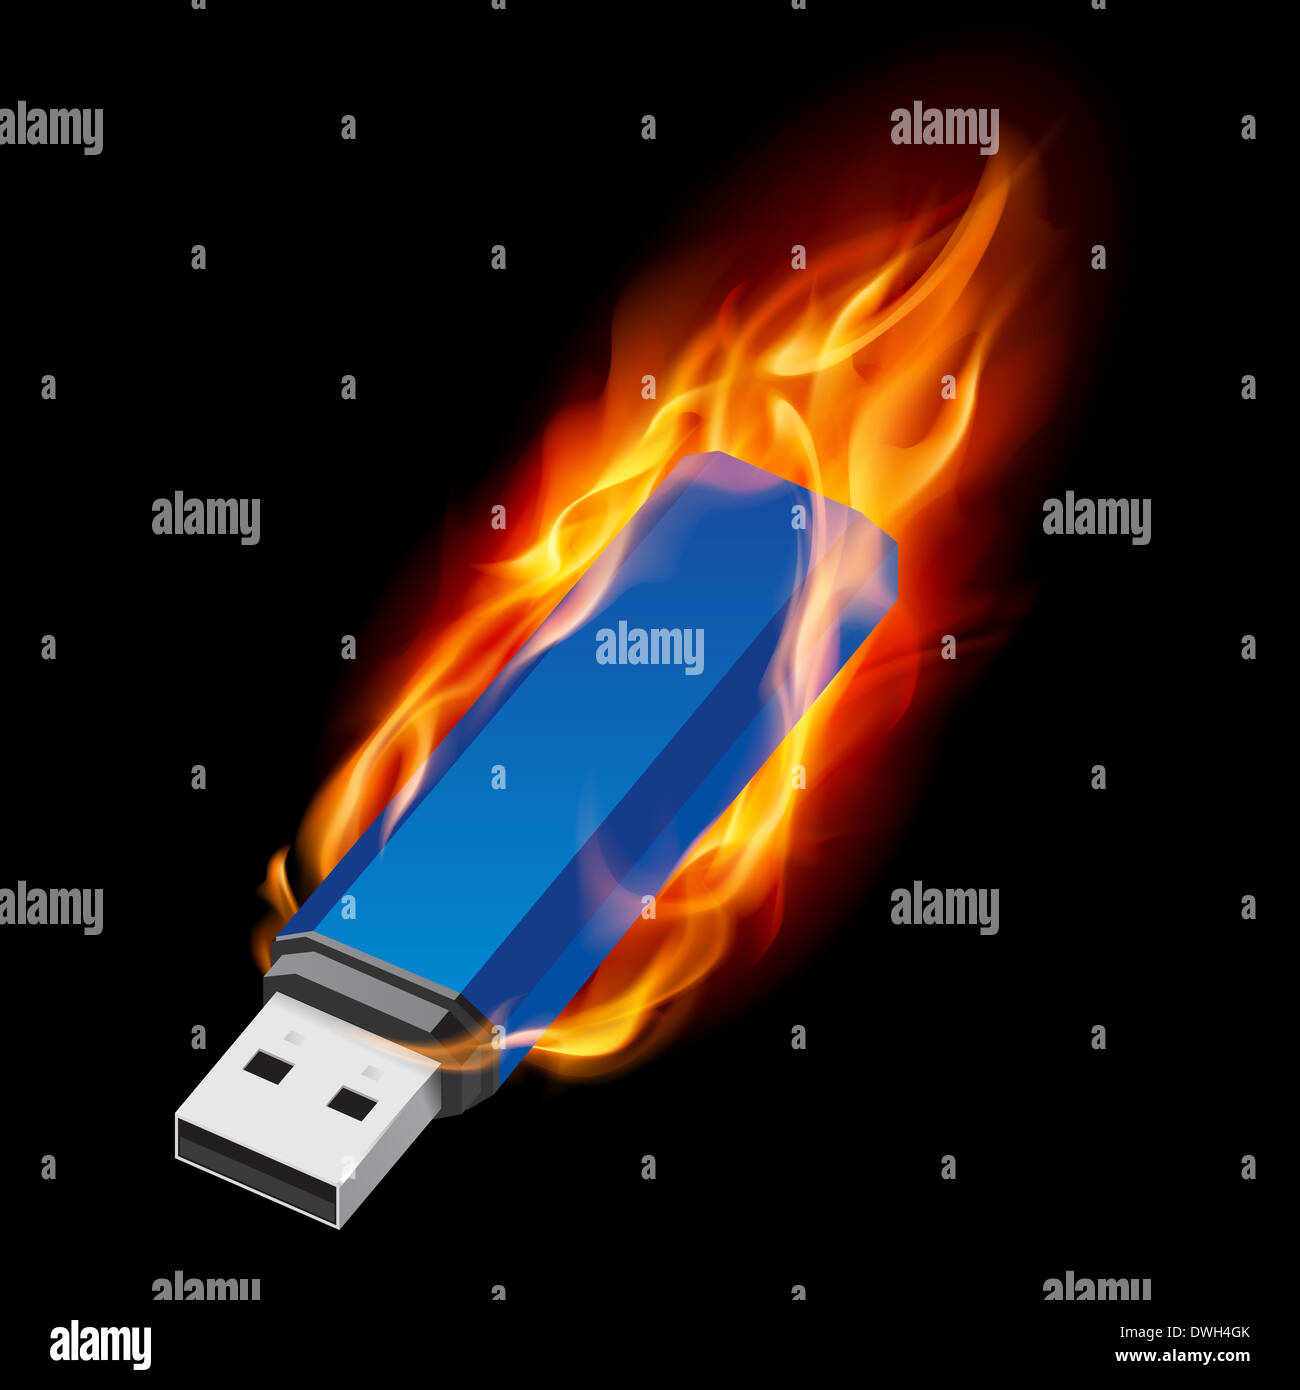 Blue Usb Flash Drive In Fire Illustration On Black Background Stock Photo Alamy